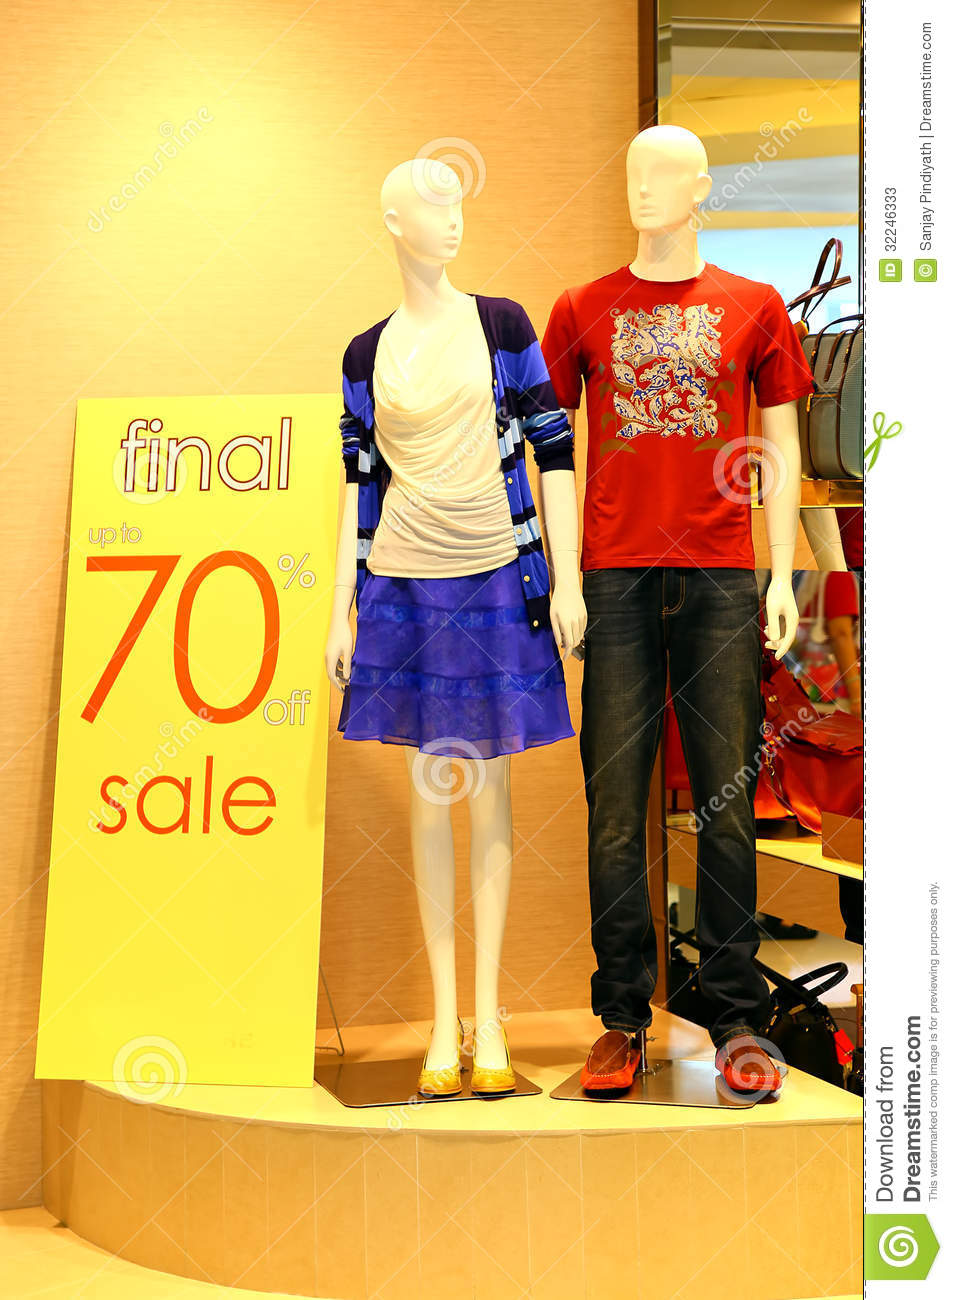 clothes for men and women on display at a store with price discount